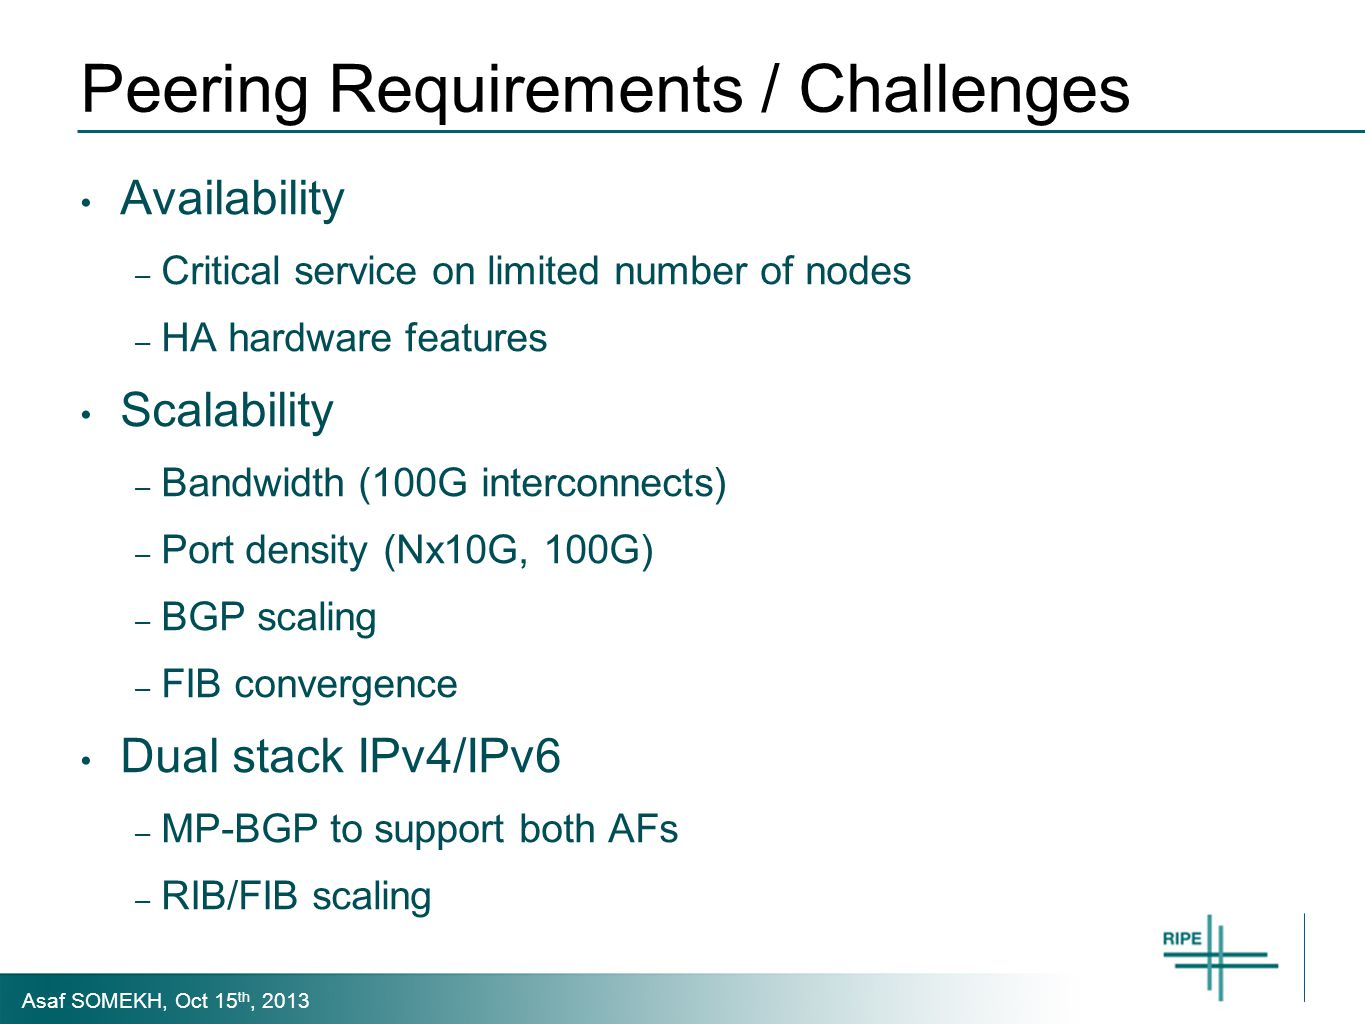 Asaf SOMEKH, Oct 15 th, 2013 Peering Requirements / Challenges Availability – Critical service on limited number of nodes – HA hardware features Scalability – Bandwidth (100G interconnects) – Port density (Nx10G, 100G) – BGP scaling – FIB convergence Dual stack IPv4/IPv6 – MP-BGP to support both AFs – RIB/FIB scaling